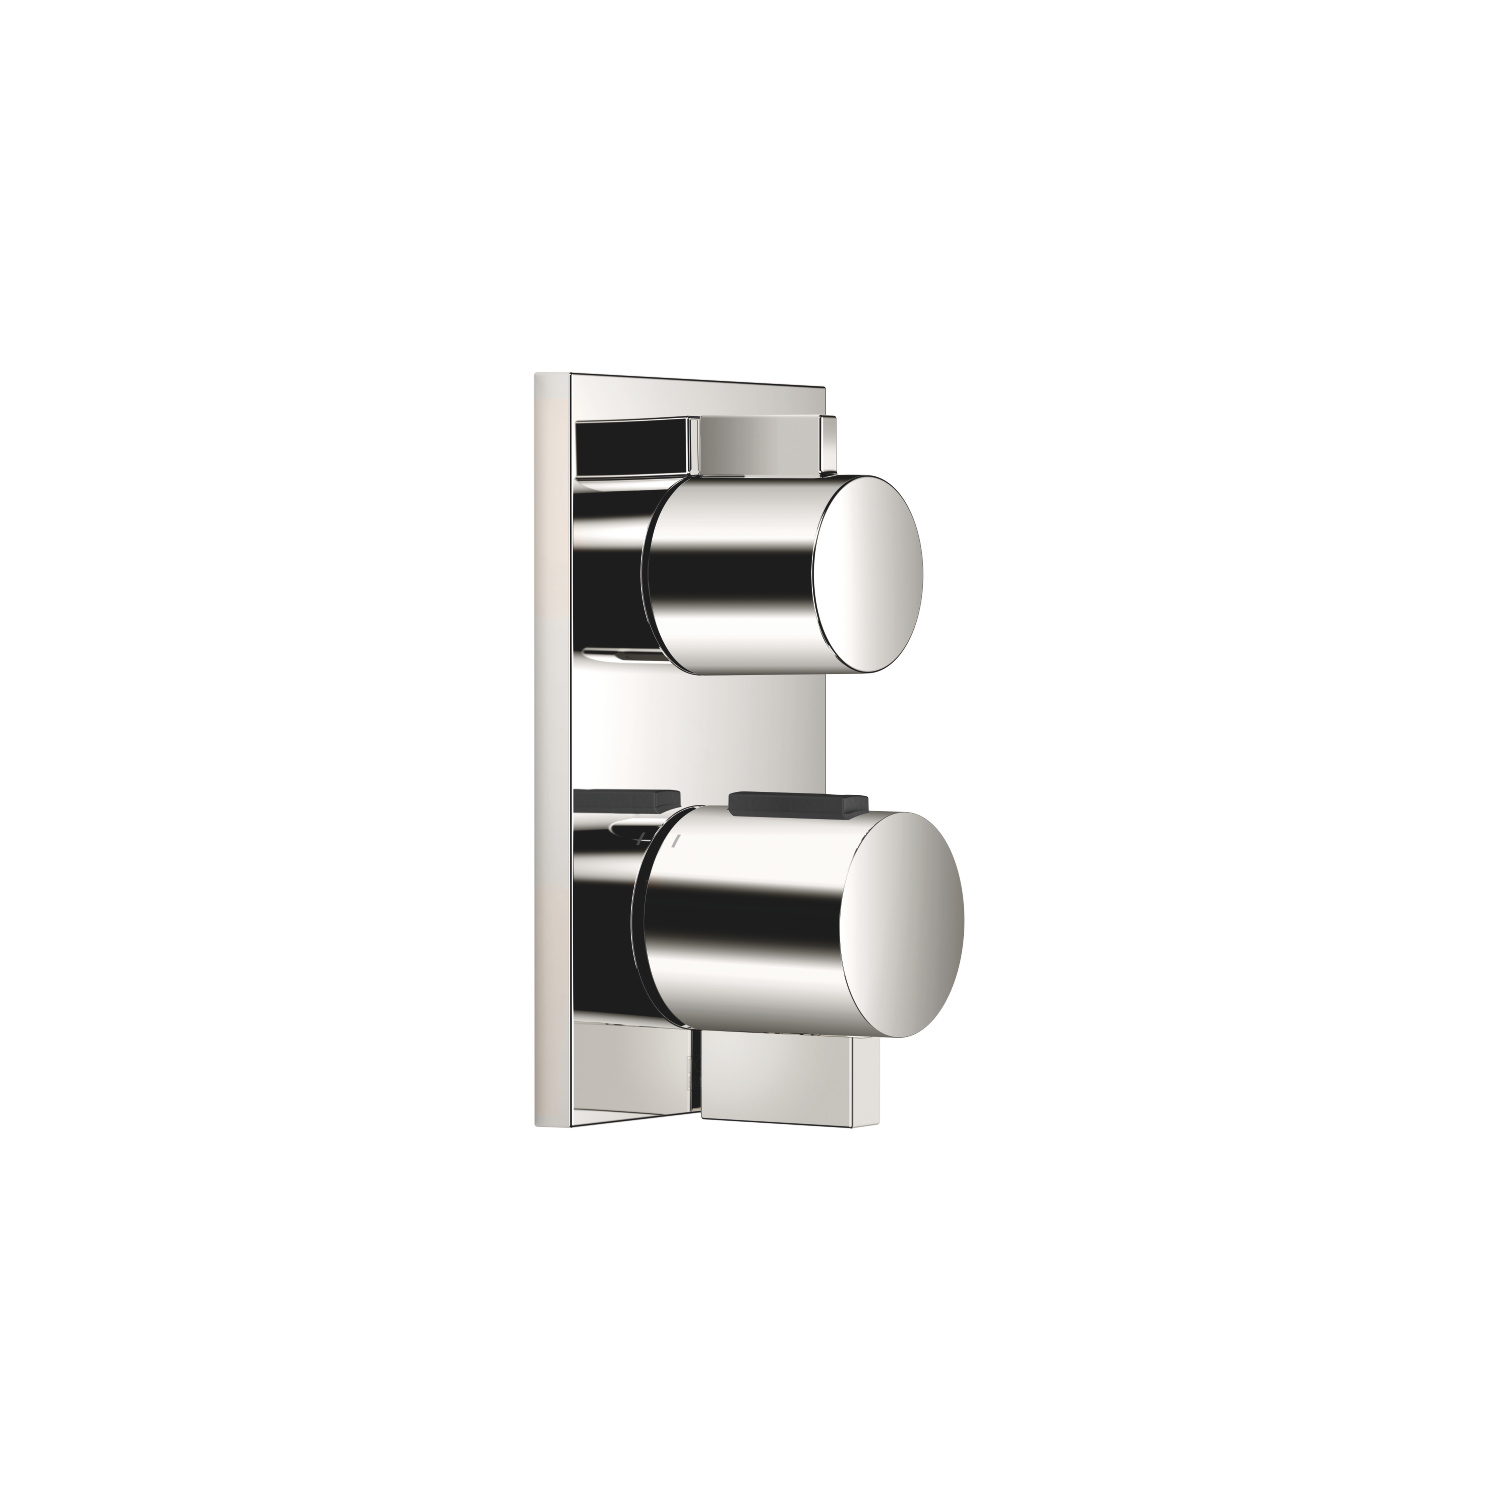 Concealed thermostat with one function volume control - platinum